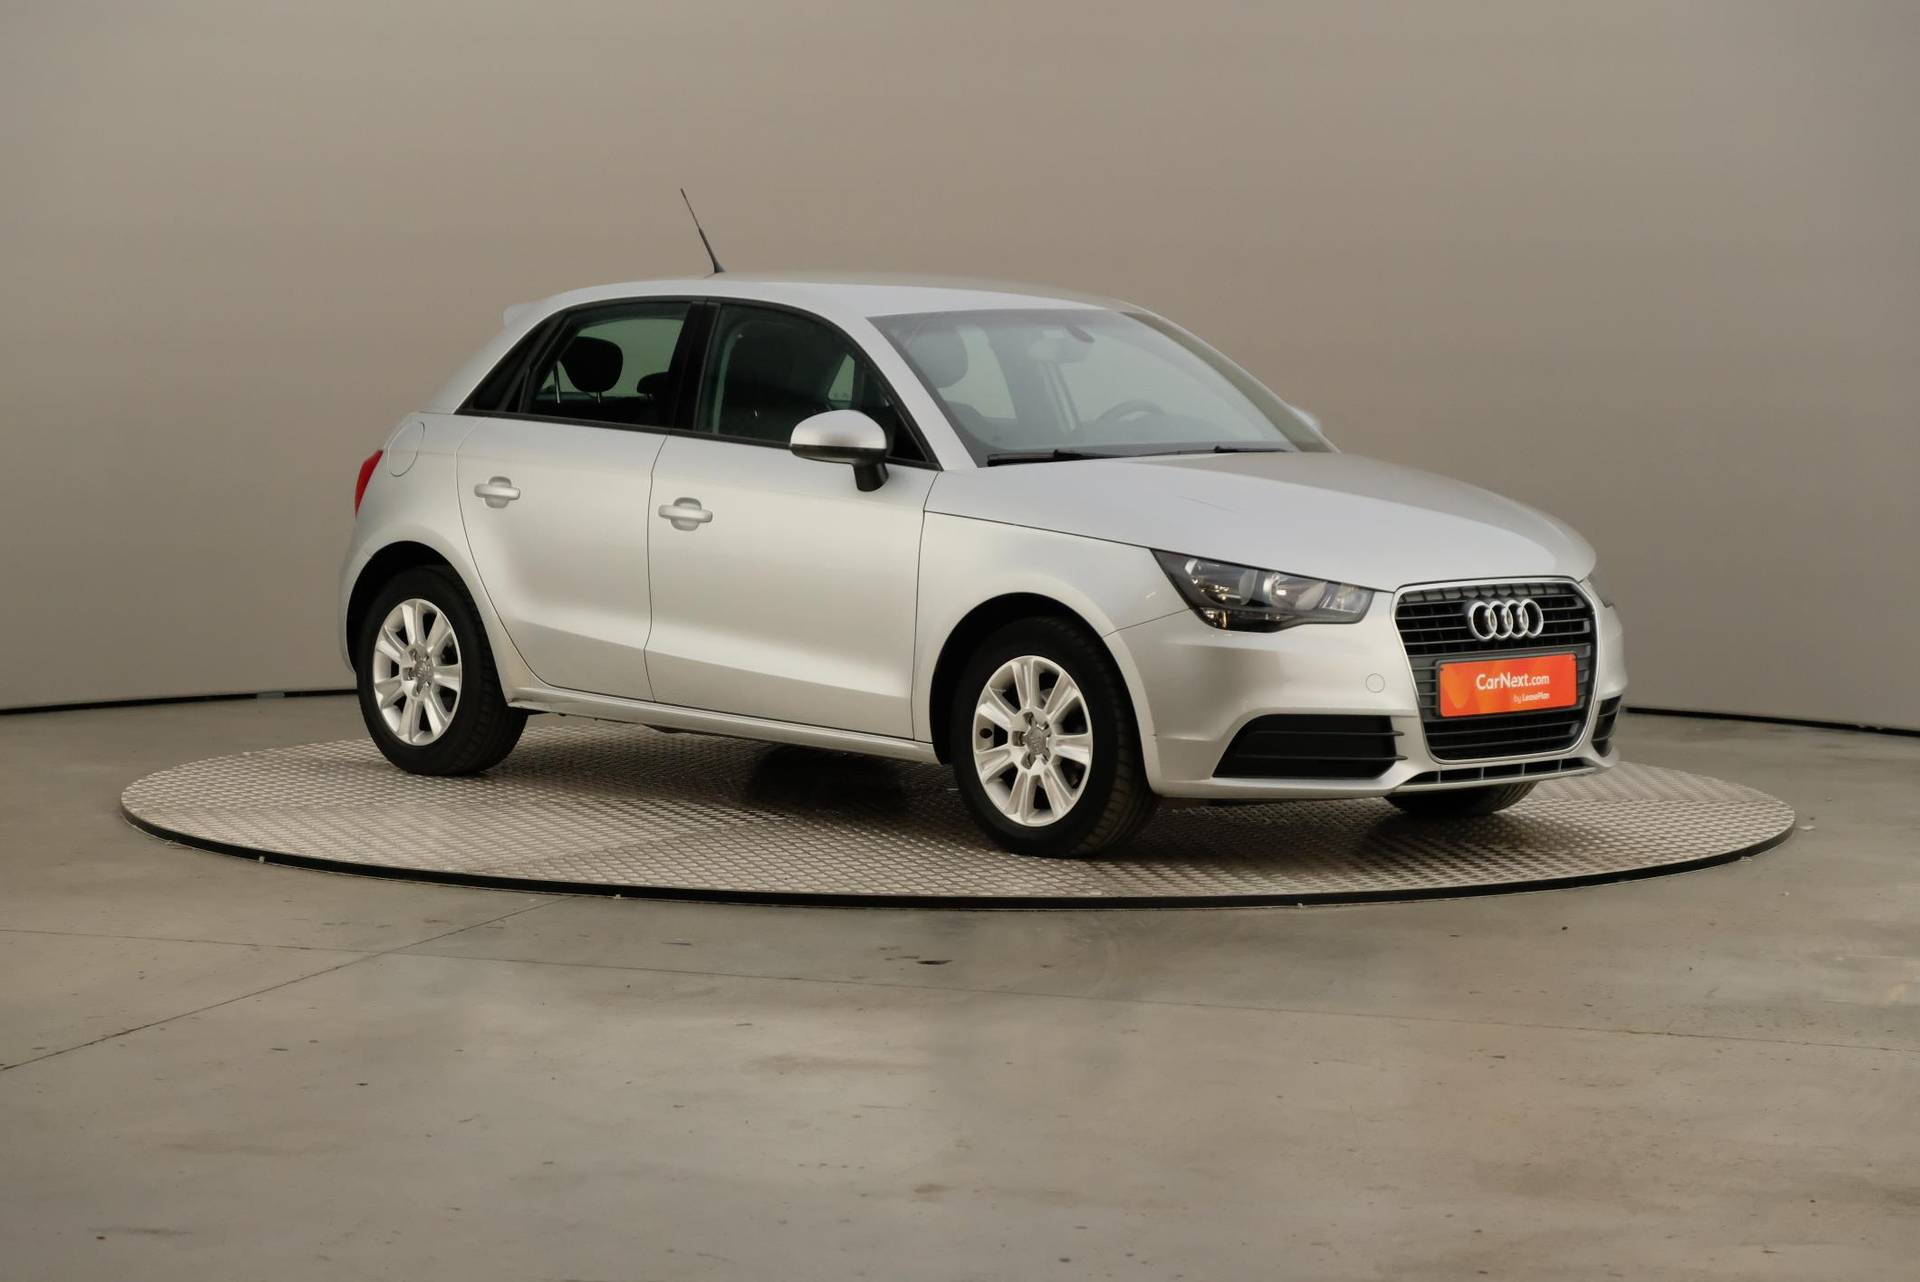 Audi A1 1.6 TDI Sportback, Attraction S&S PDC BT, 360-image27